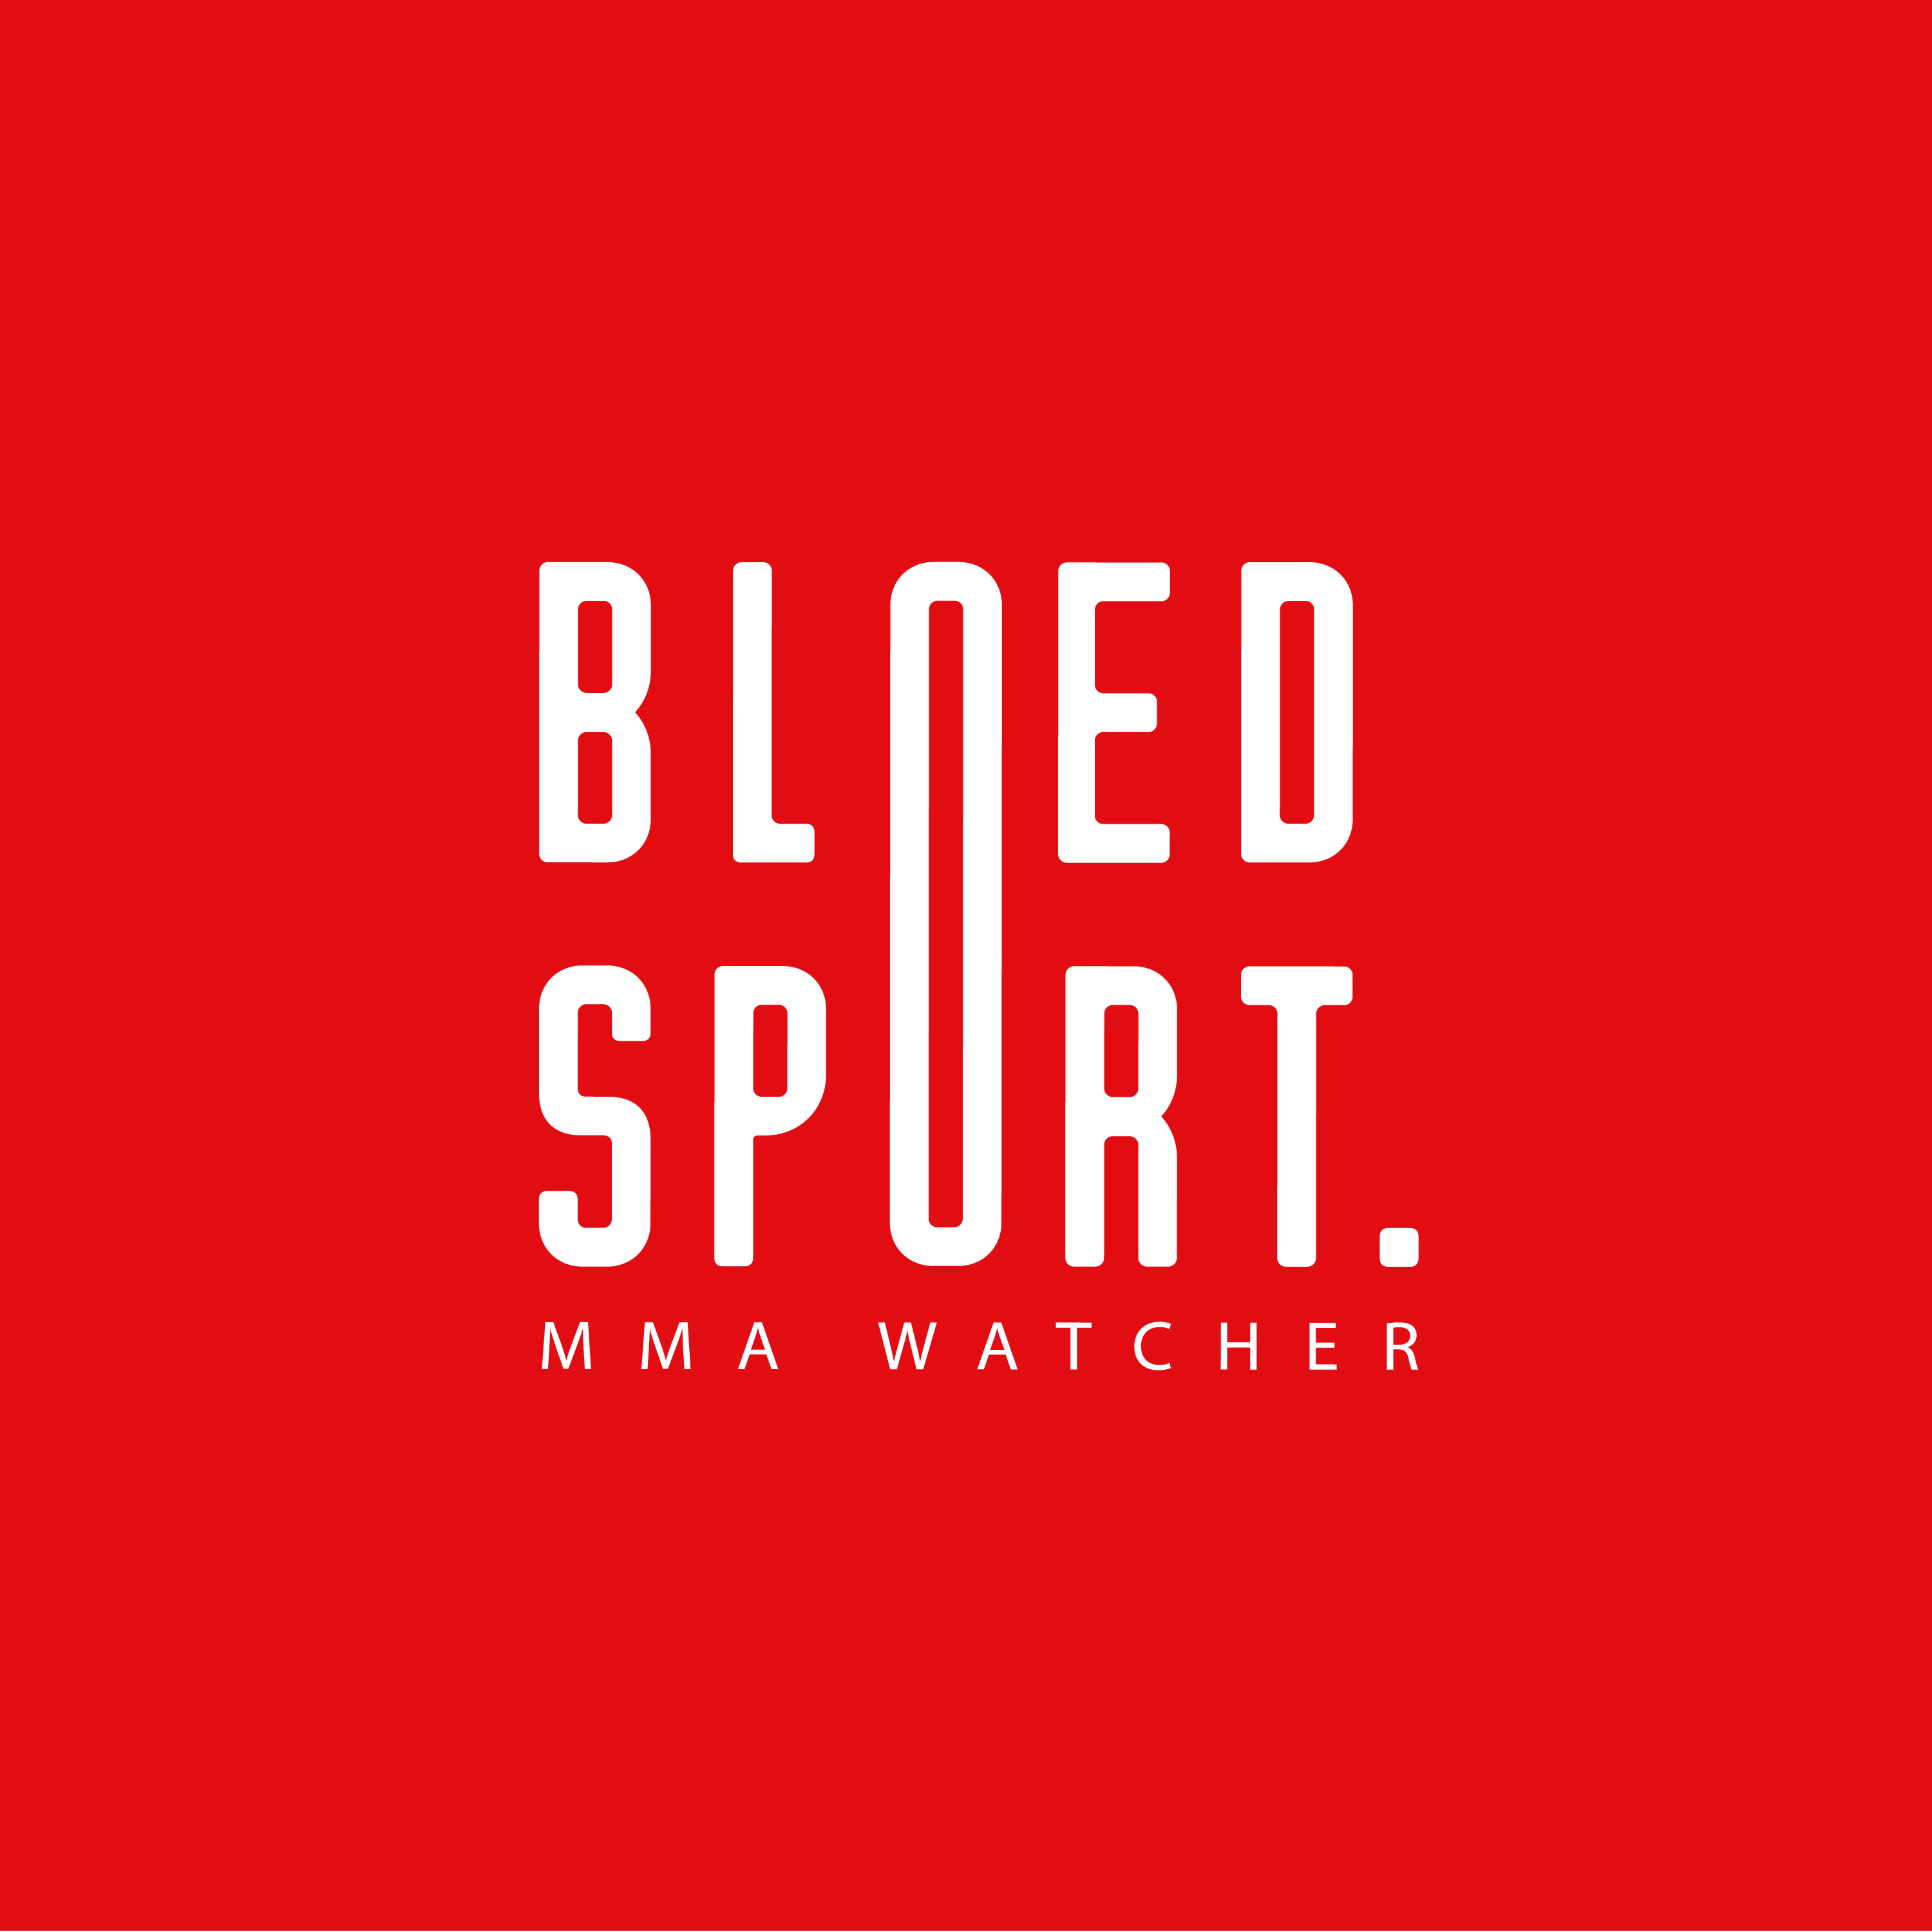 Bloedsport De MMA Watcher podcast logo